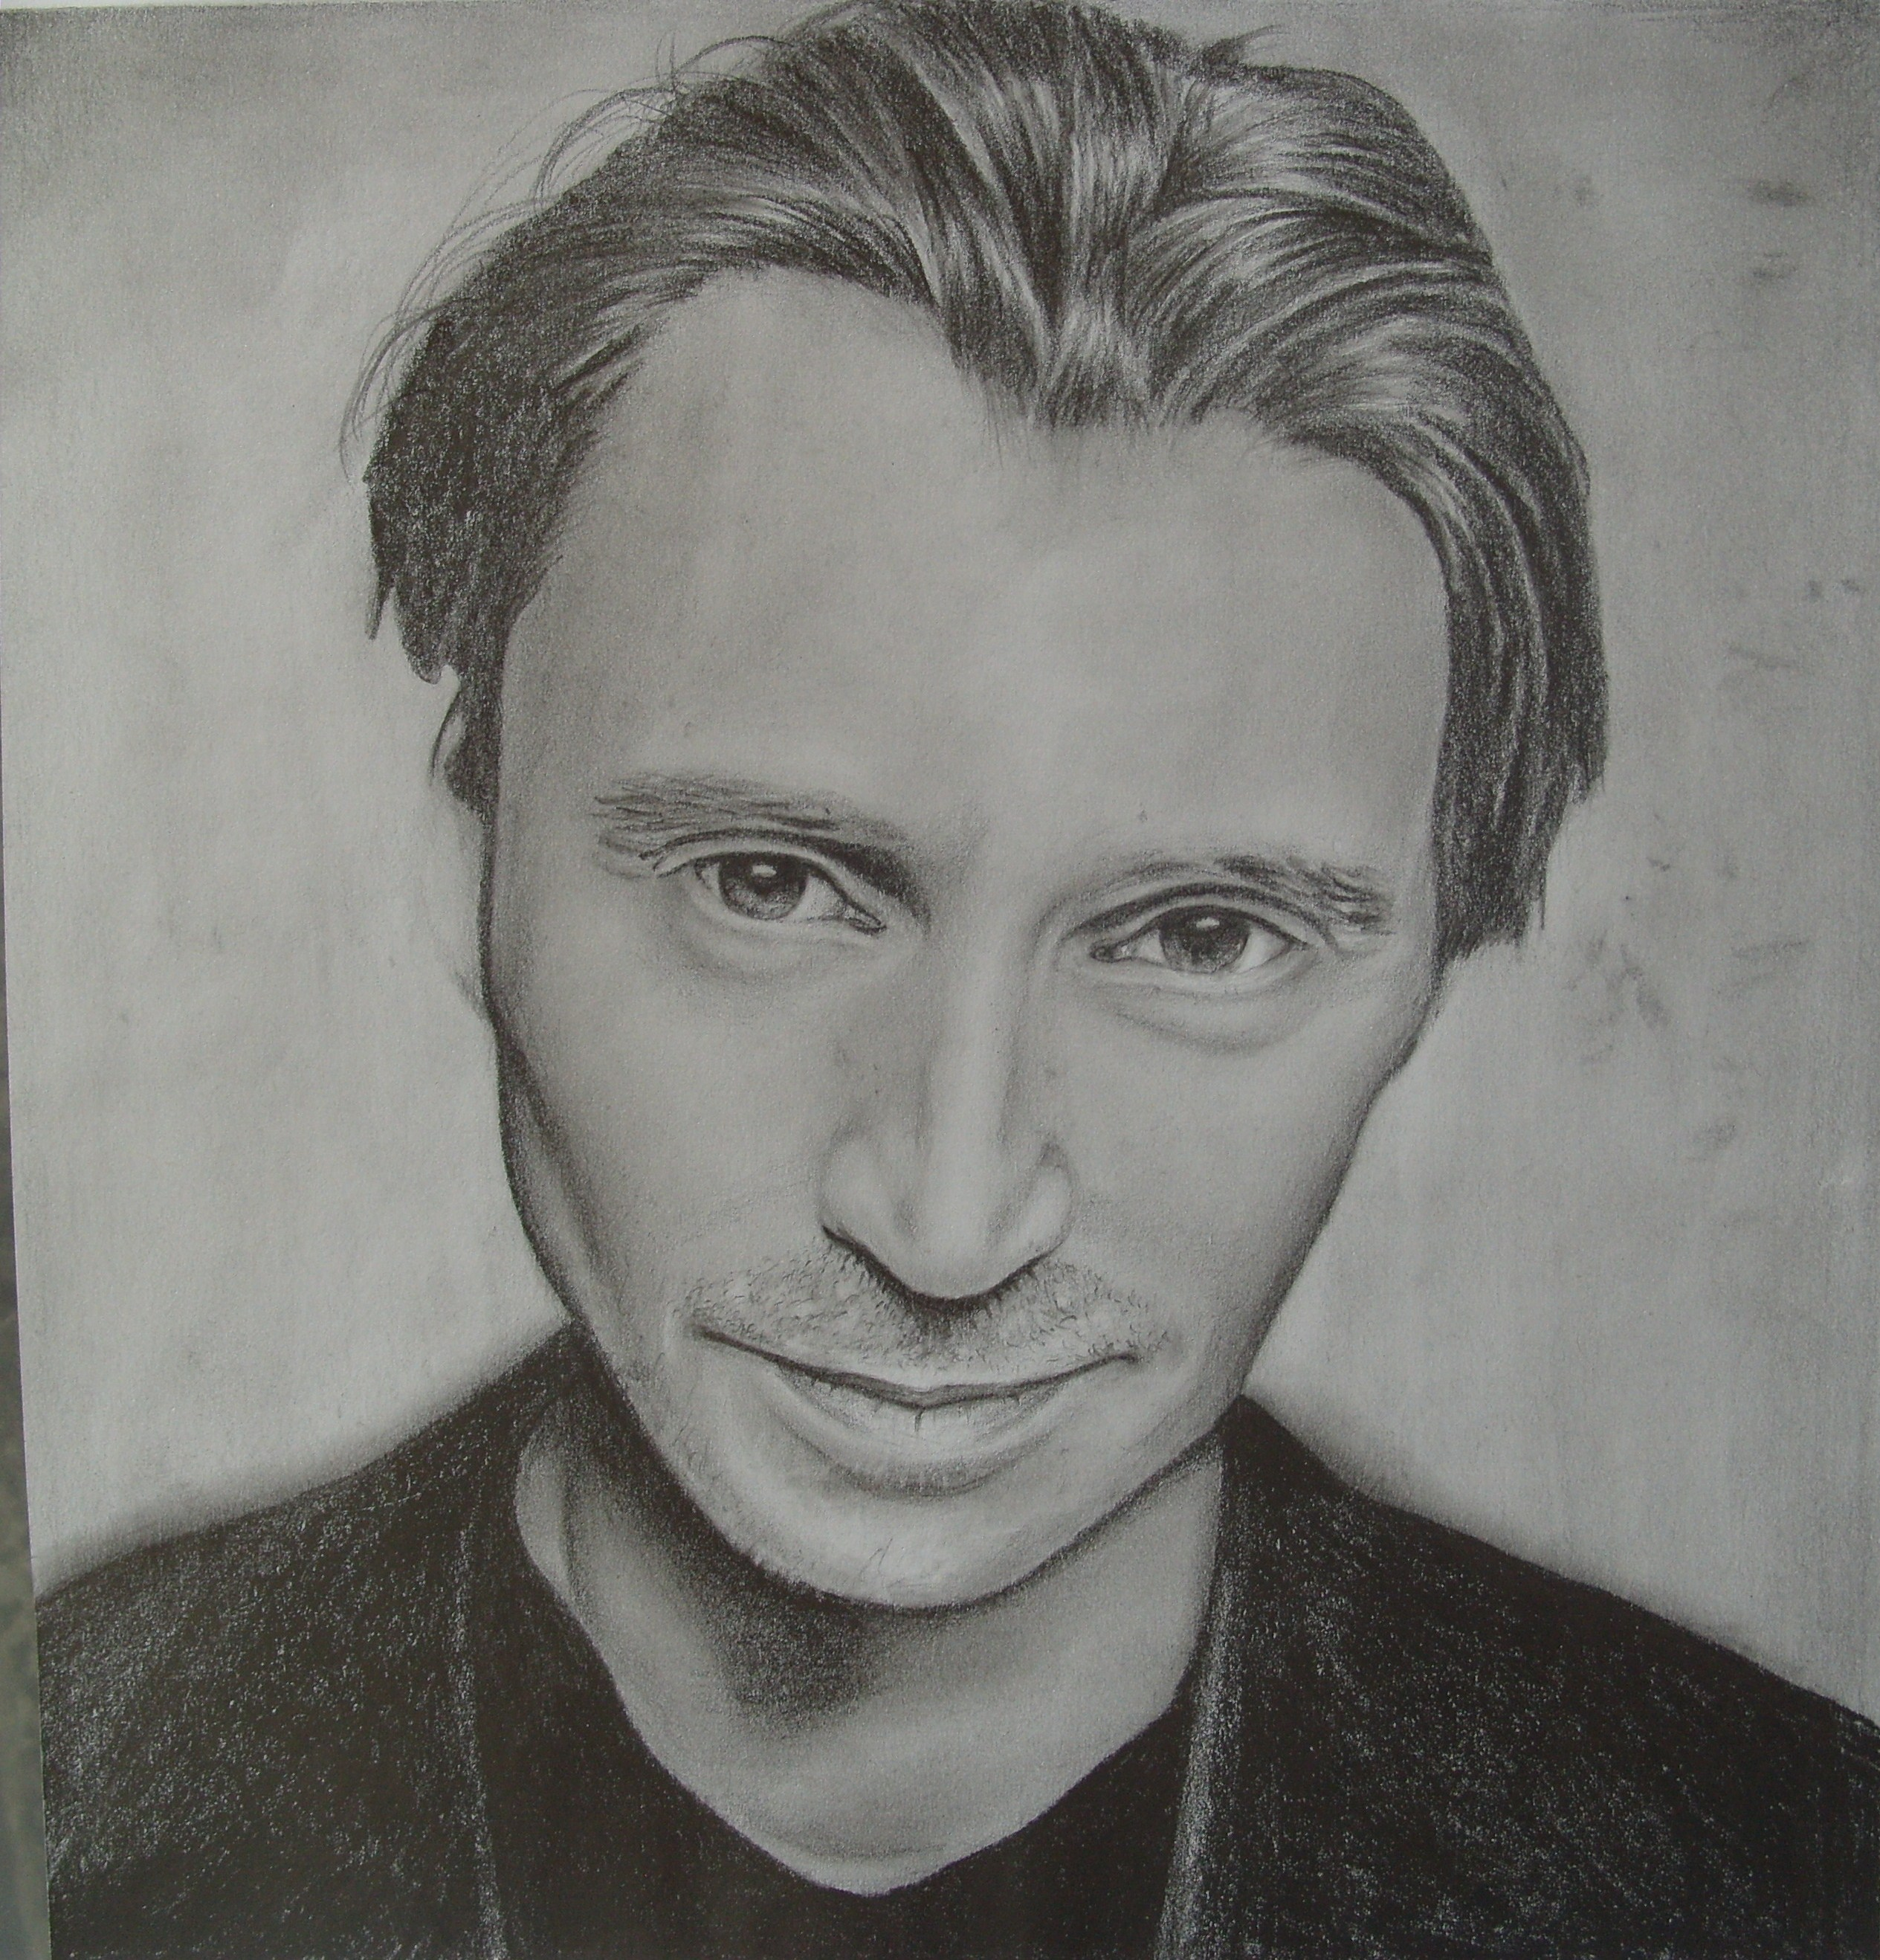 Robert carlyle by donaldmc25 Robert carlyle by donaldmc25 - Robert_carlyle_by_donaldmc25